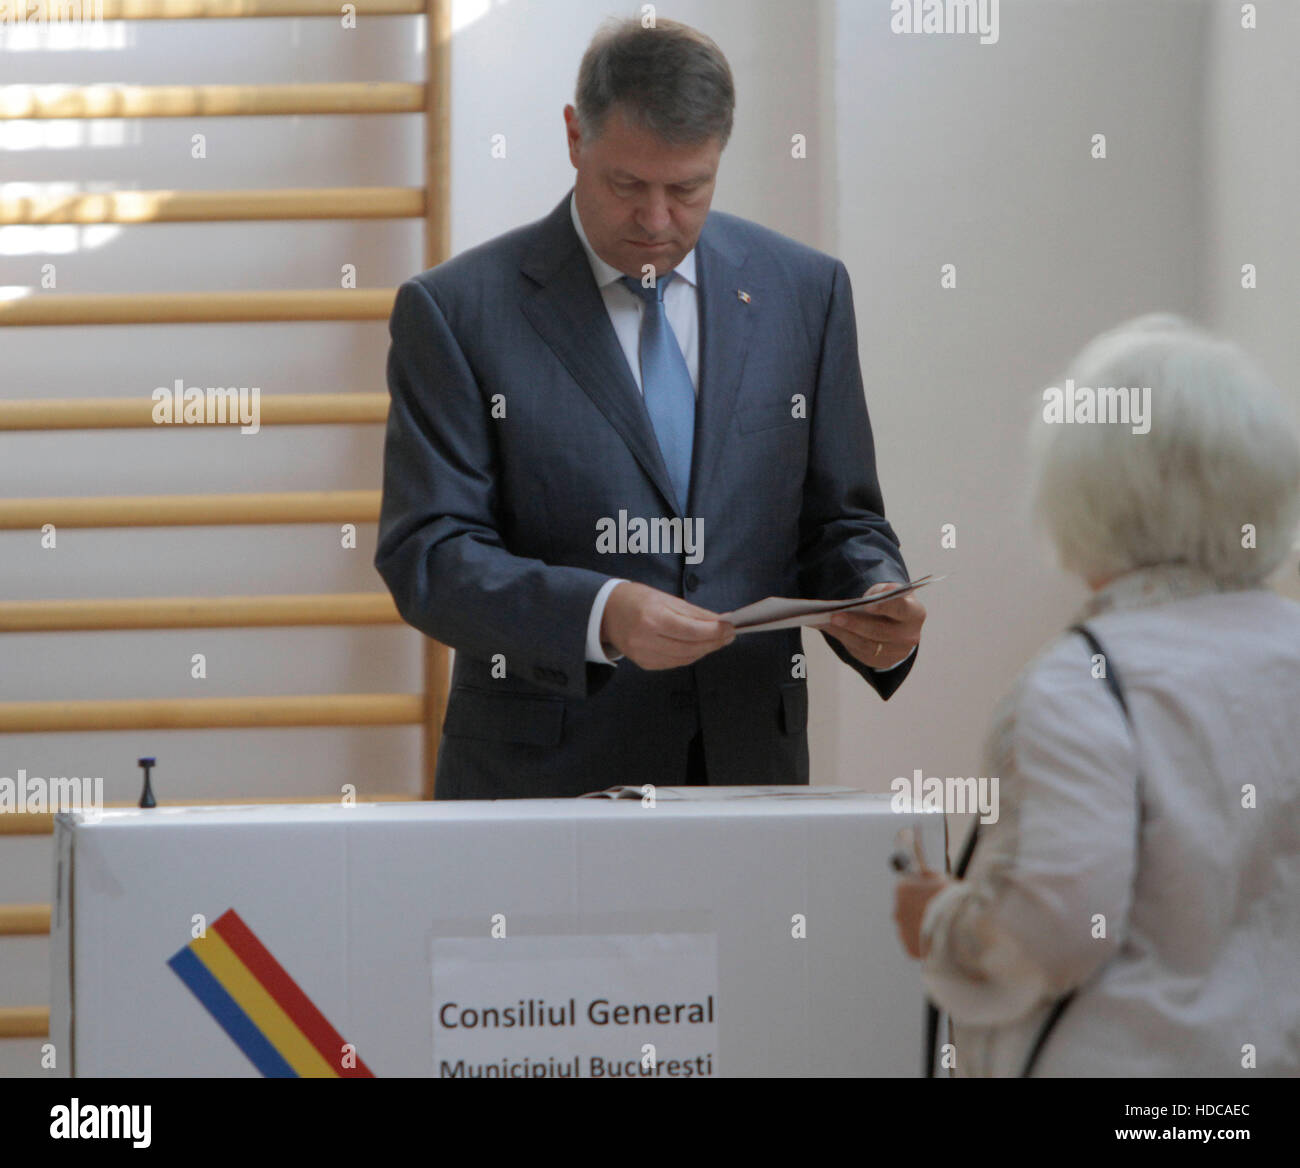 BUCHAREST, ROMANIA - MAY 05, 2016: Romanian President Klaus Iohannis casts his vote in local elections. Stock Photo